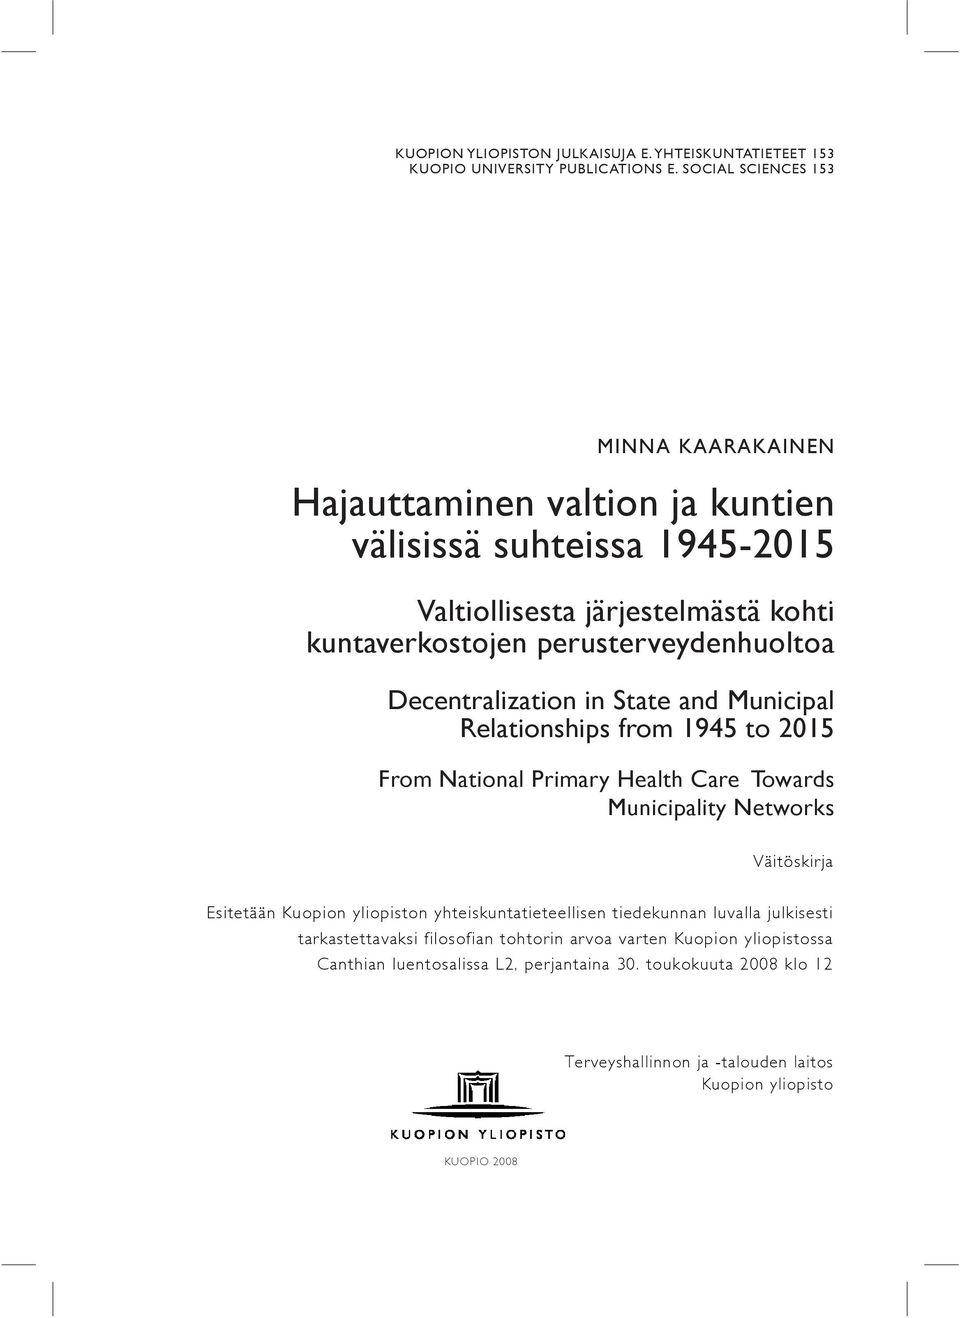 Decentralization in State and Municipal Relationships from 1945 to 2015 From National Primary Health Care Towards Municipality Networks Väitöskirja Esitetään Kuopion yliopiston